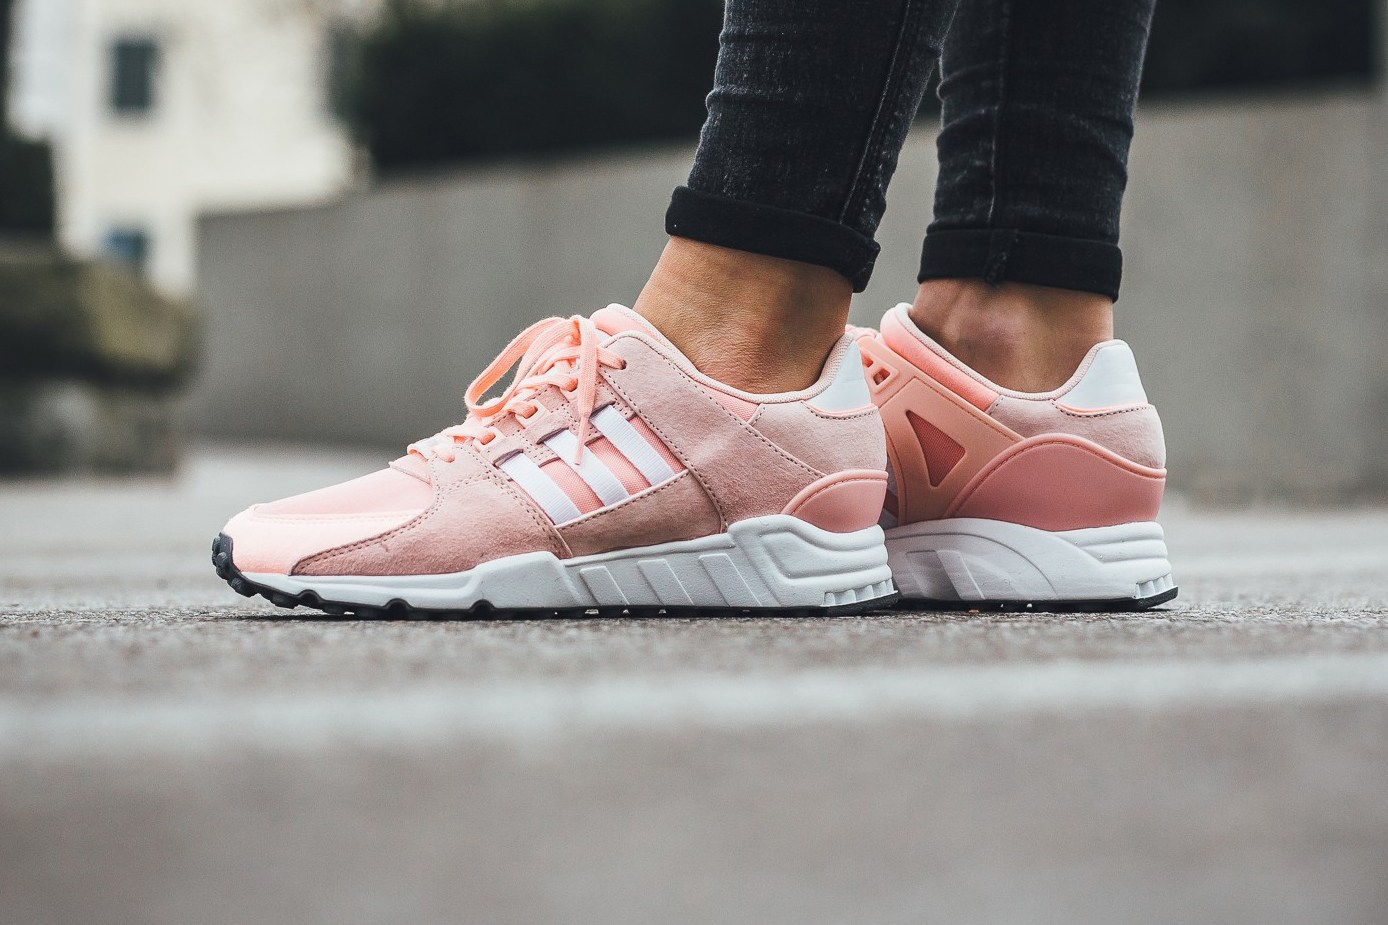 La dernière Adidas Originals EQT Support RF totalement girly